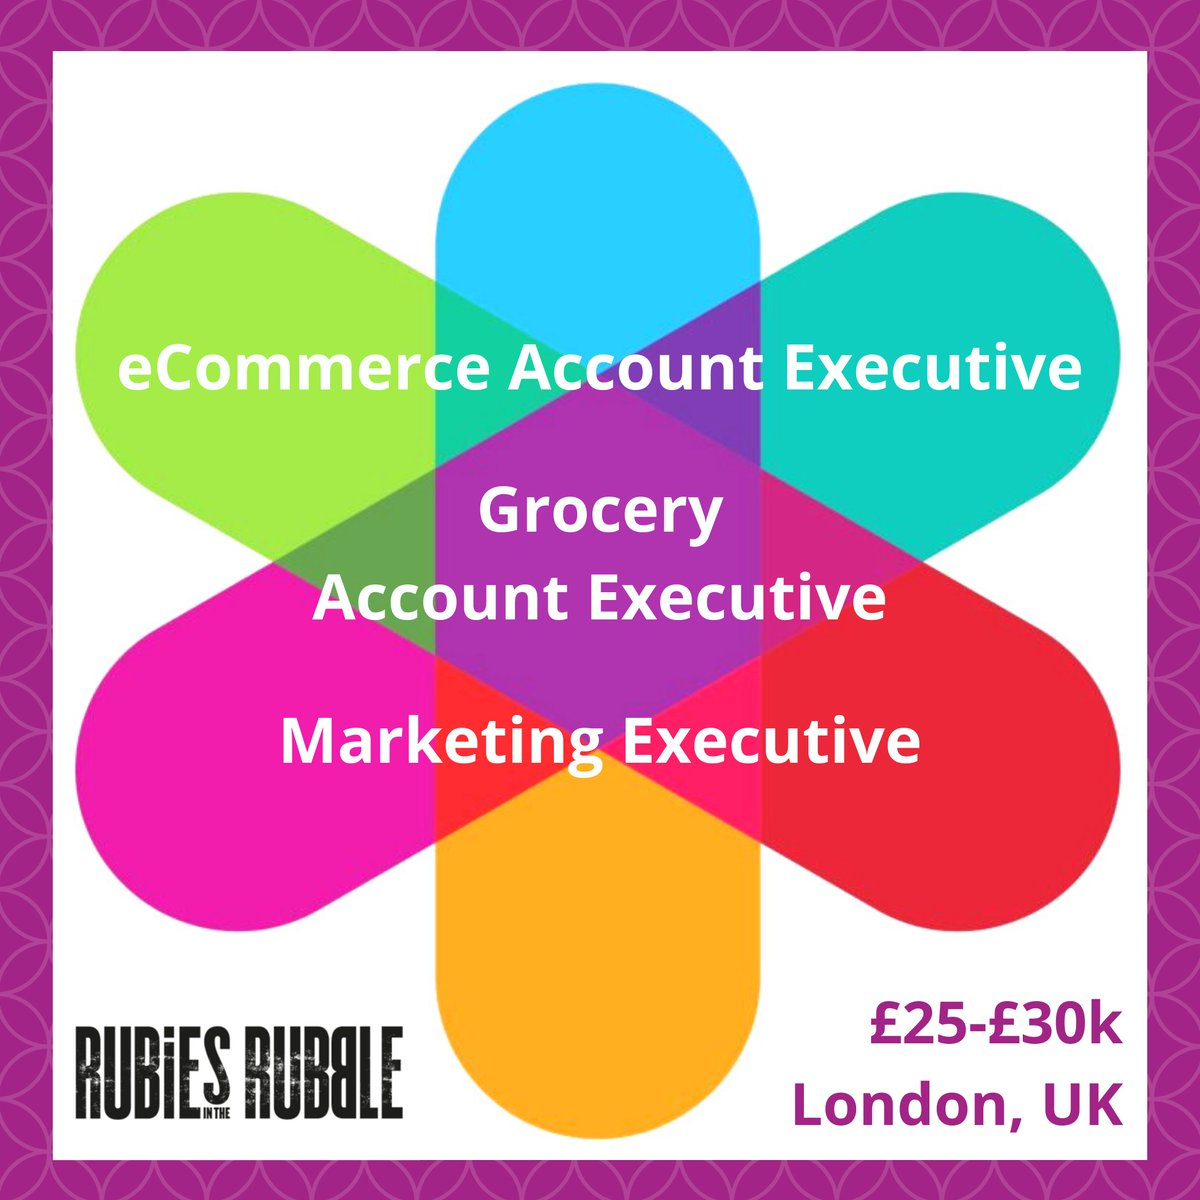 **NEW ROLES, JUST IN!** Head over to our new #jobs board  to view details of all these exciting opportunities to join the wonderful team at @rubiesinrubble. #MarketingJobs #marketing #eCommerce #grocery #AccountManagement #ExecutiveRoles #LondonJobs